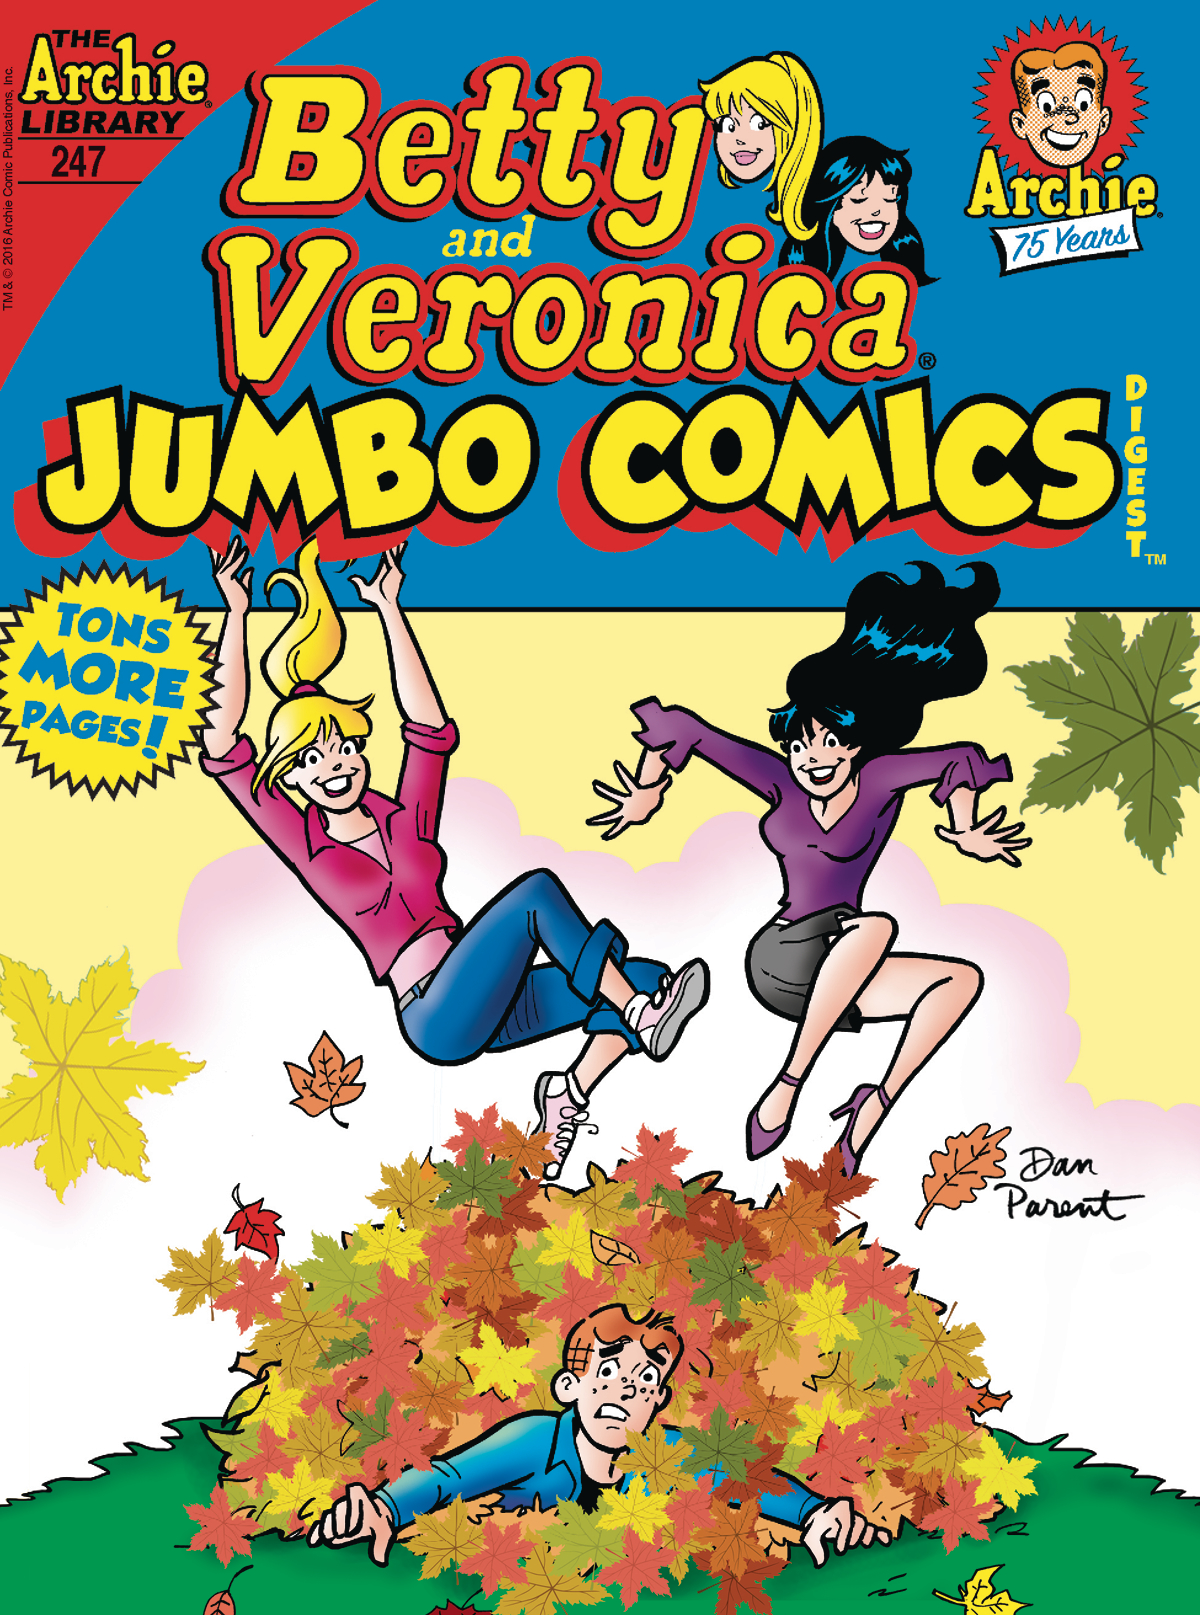 BETTY & VERONICA JUMBO COMICS DIGEST #247